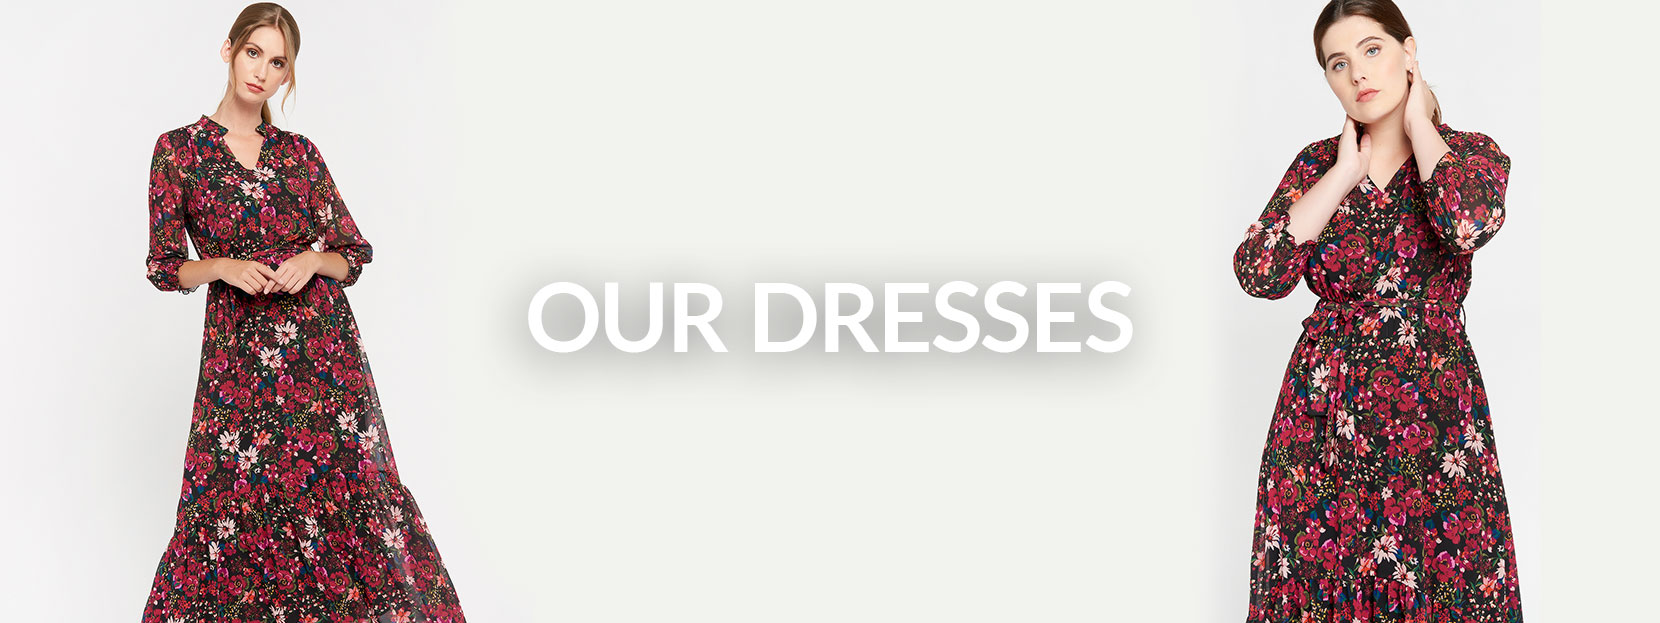 Our dresses